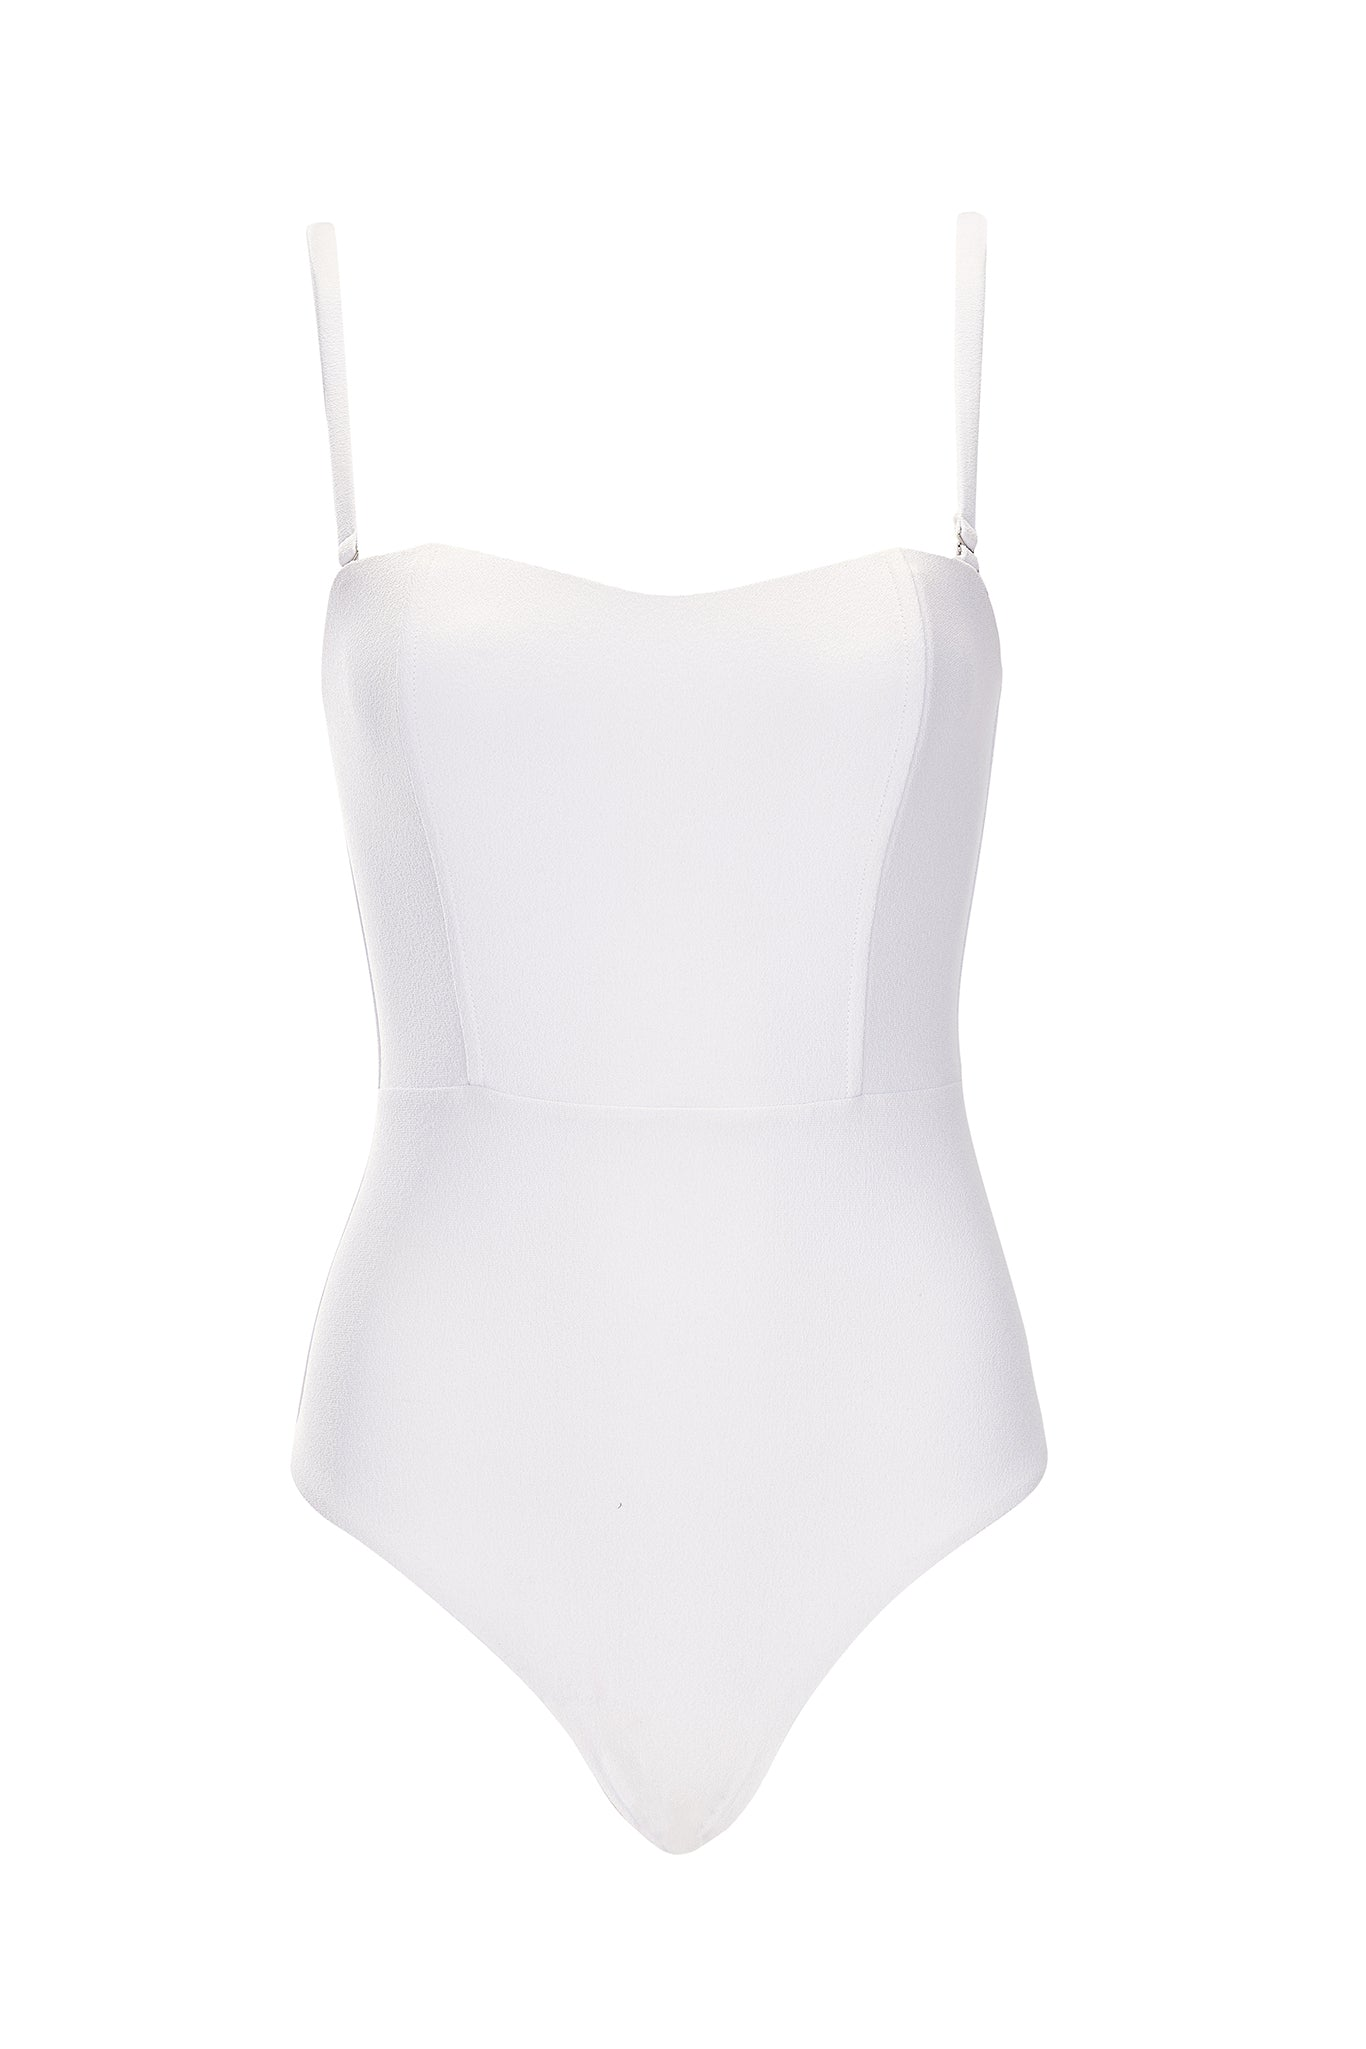 Marilyn One Piece - Cream Crepe